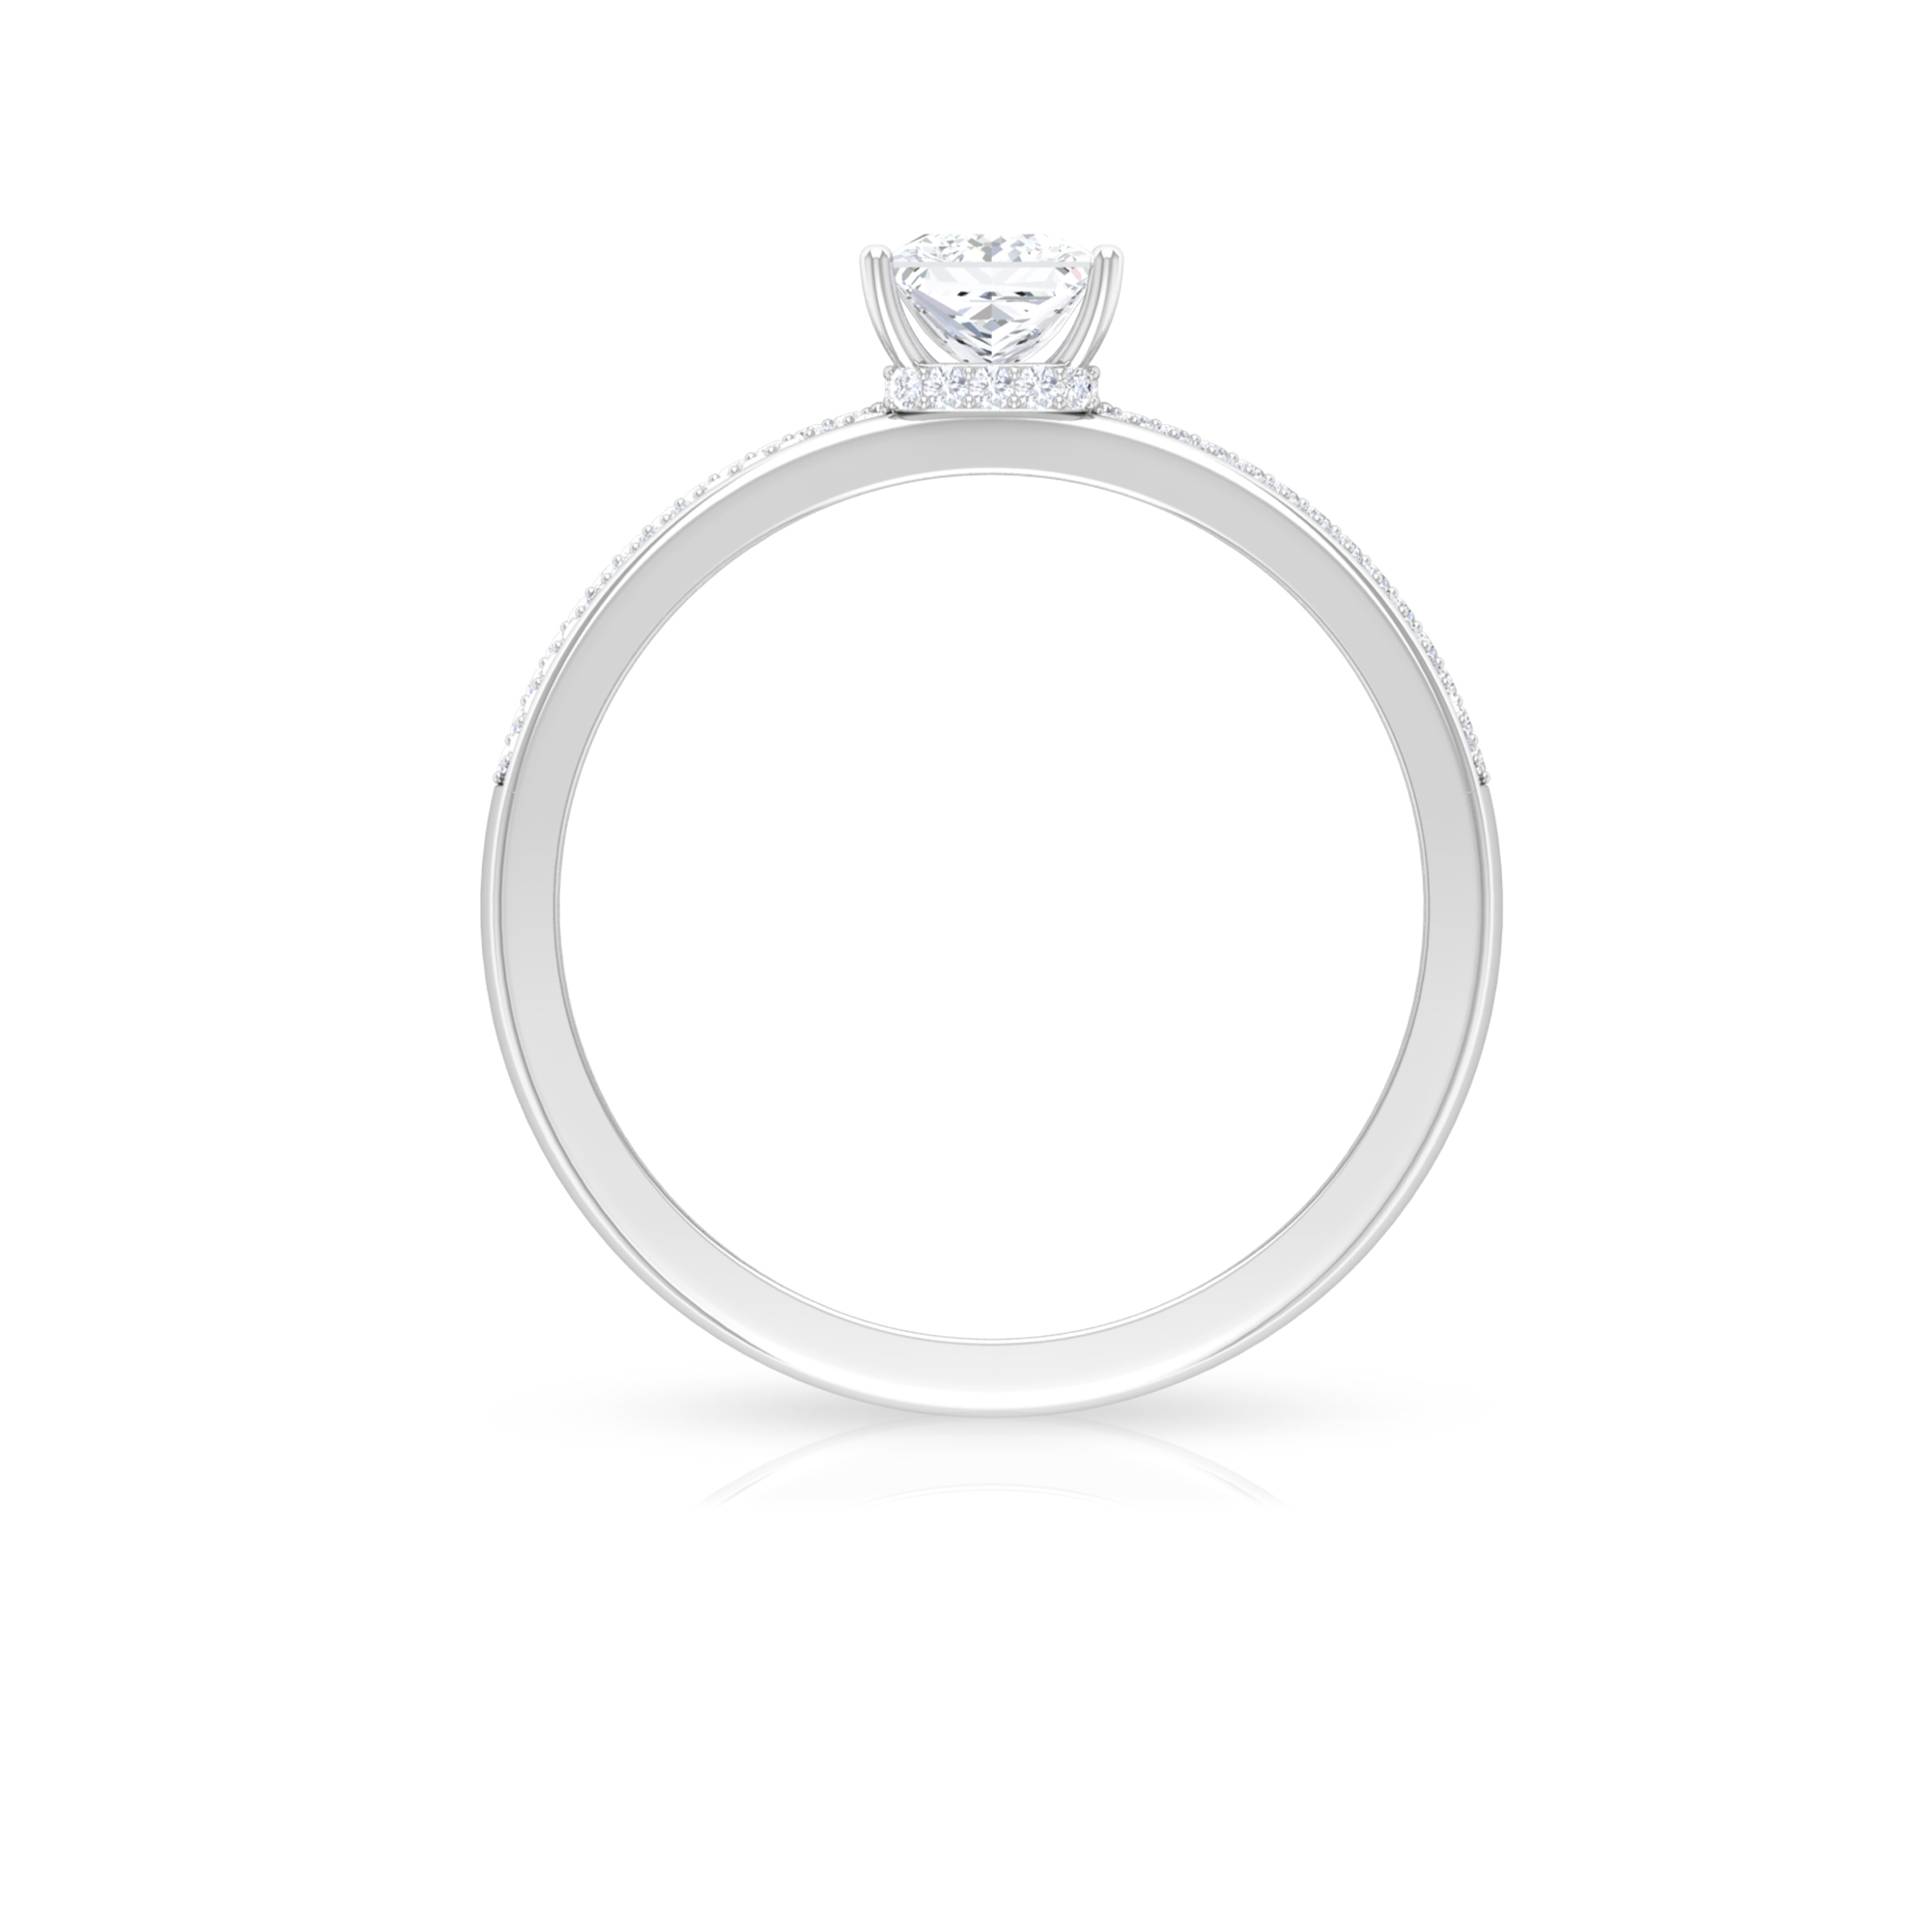 3/4 CT Solitaire Diamond Ring with Hidden Halo and Pave Set Side Stones